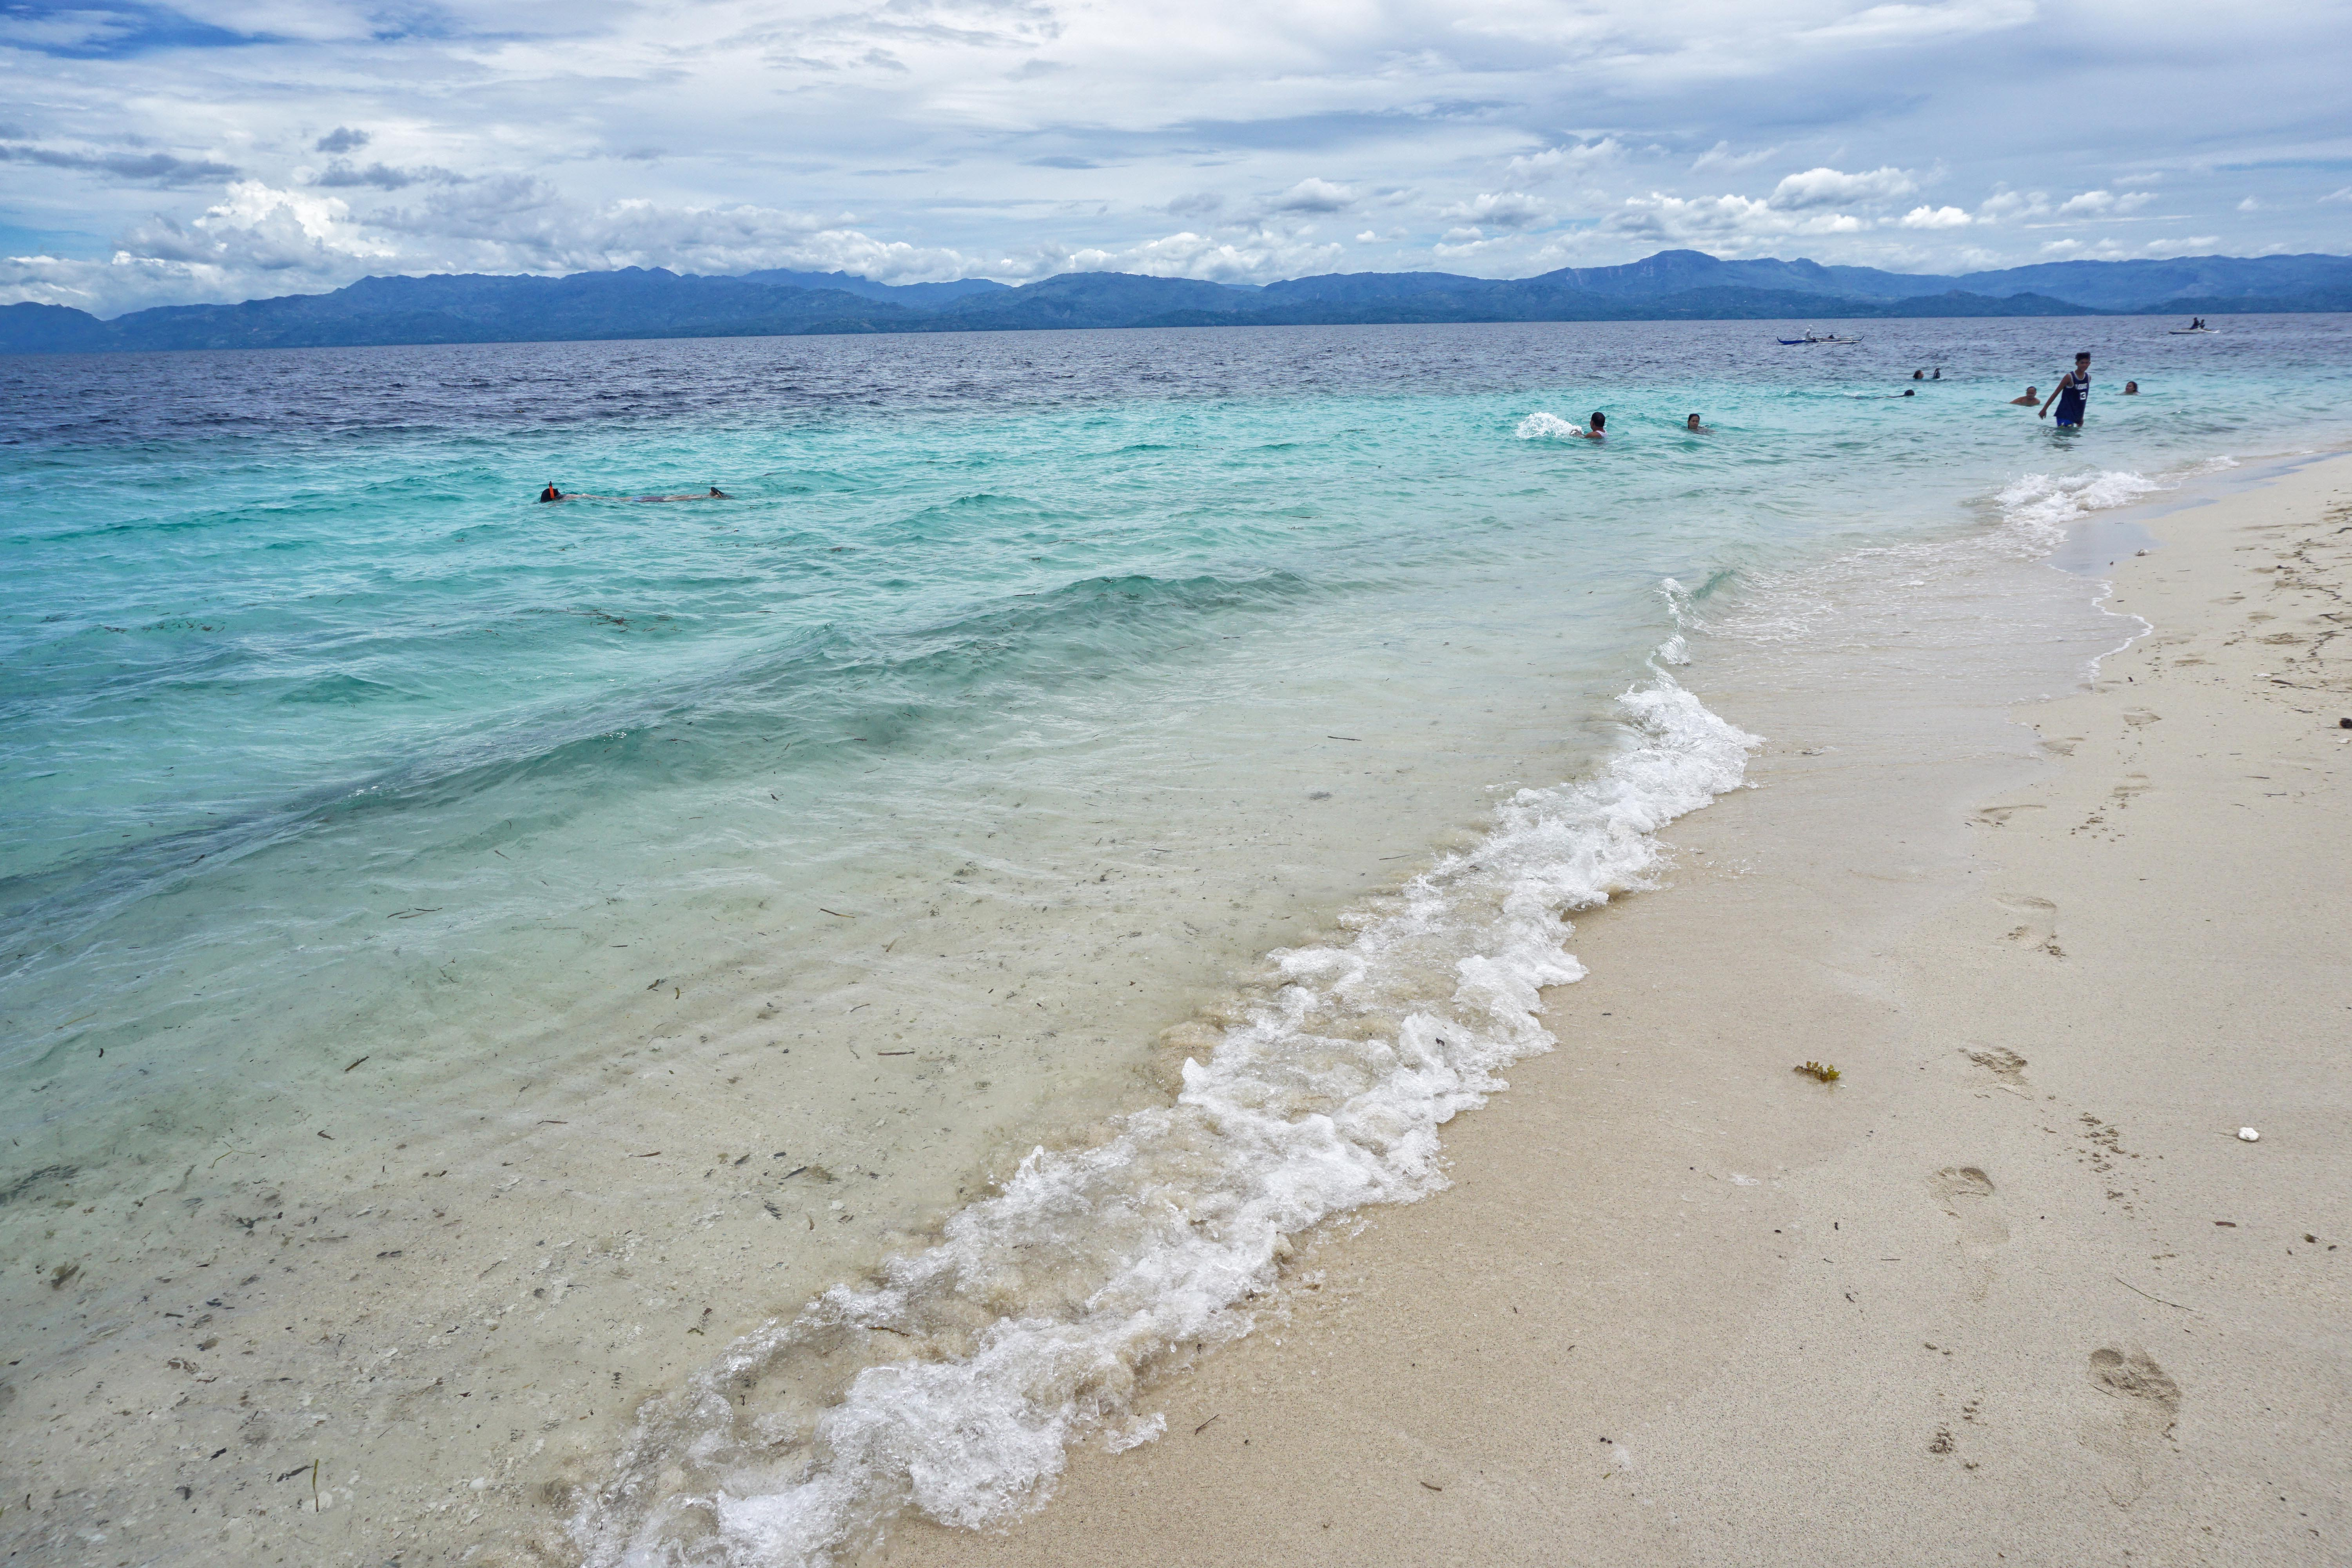 At the nearby town of Moalboal, the beaches are also a perfect spot for a weekend getaway. Photo by Louie Lapat/Rappler